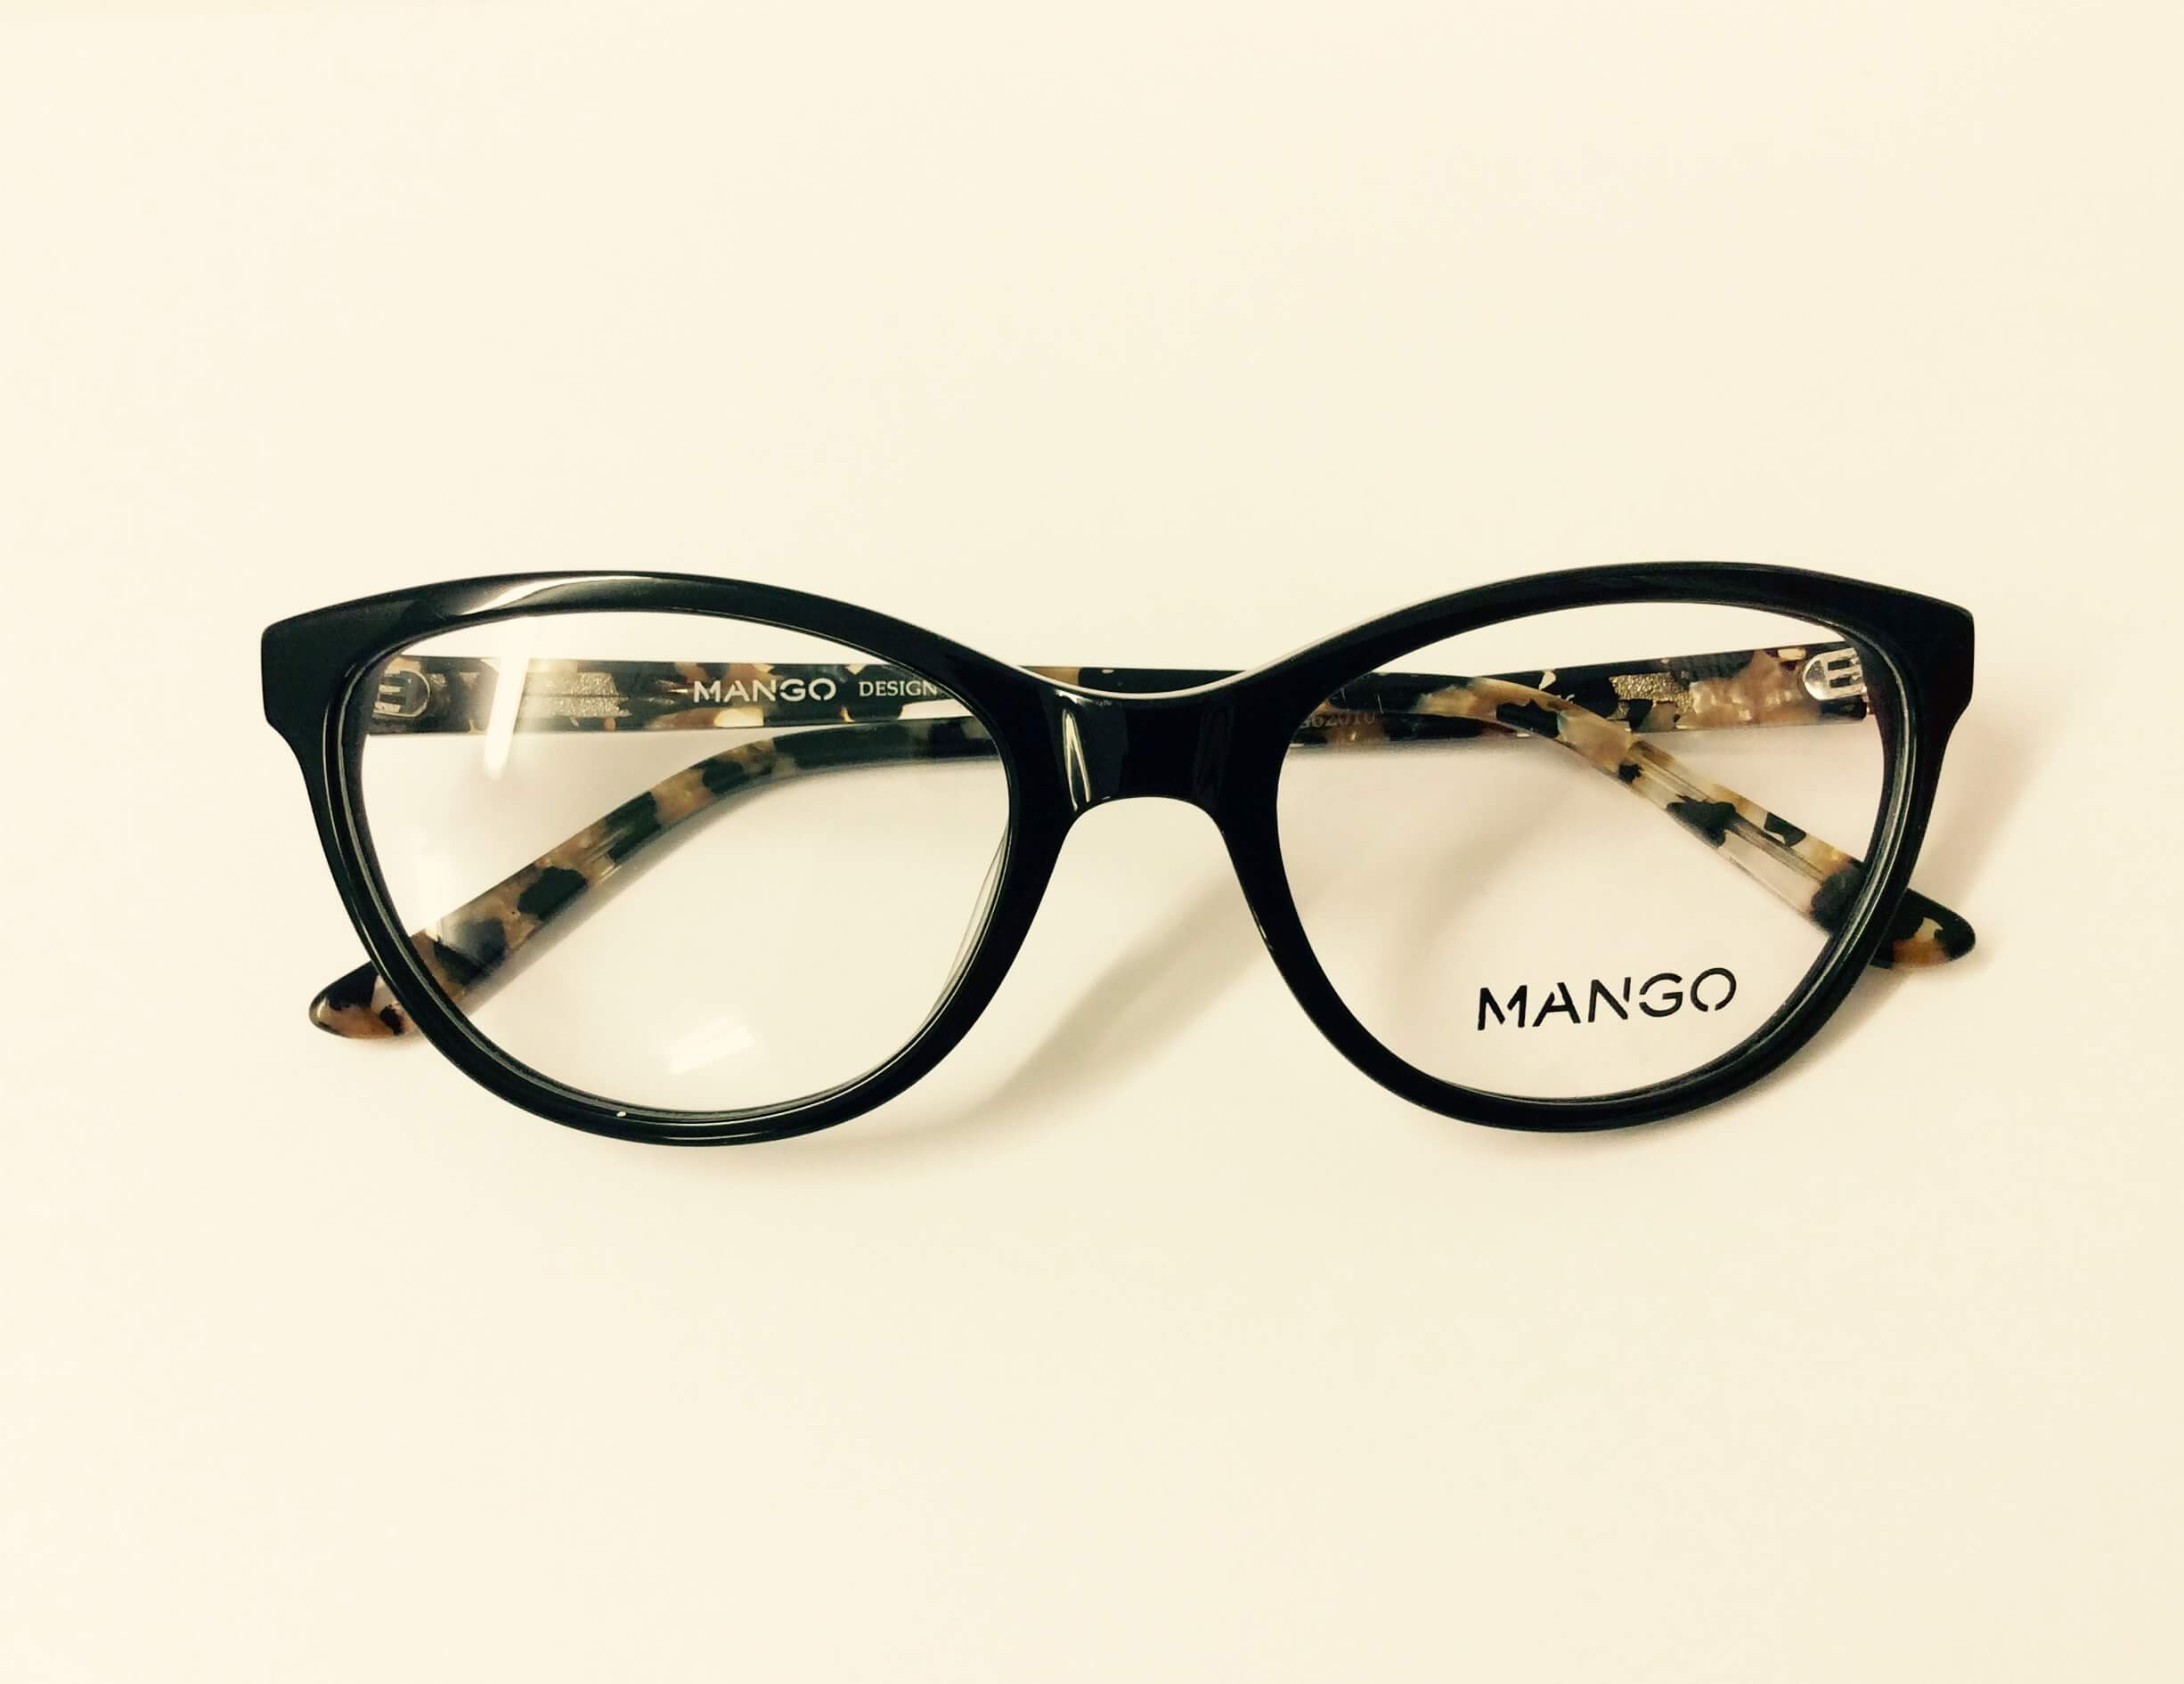 Do You Need a New Pair of Frames? Check out our NEW Mango Range ...